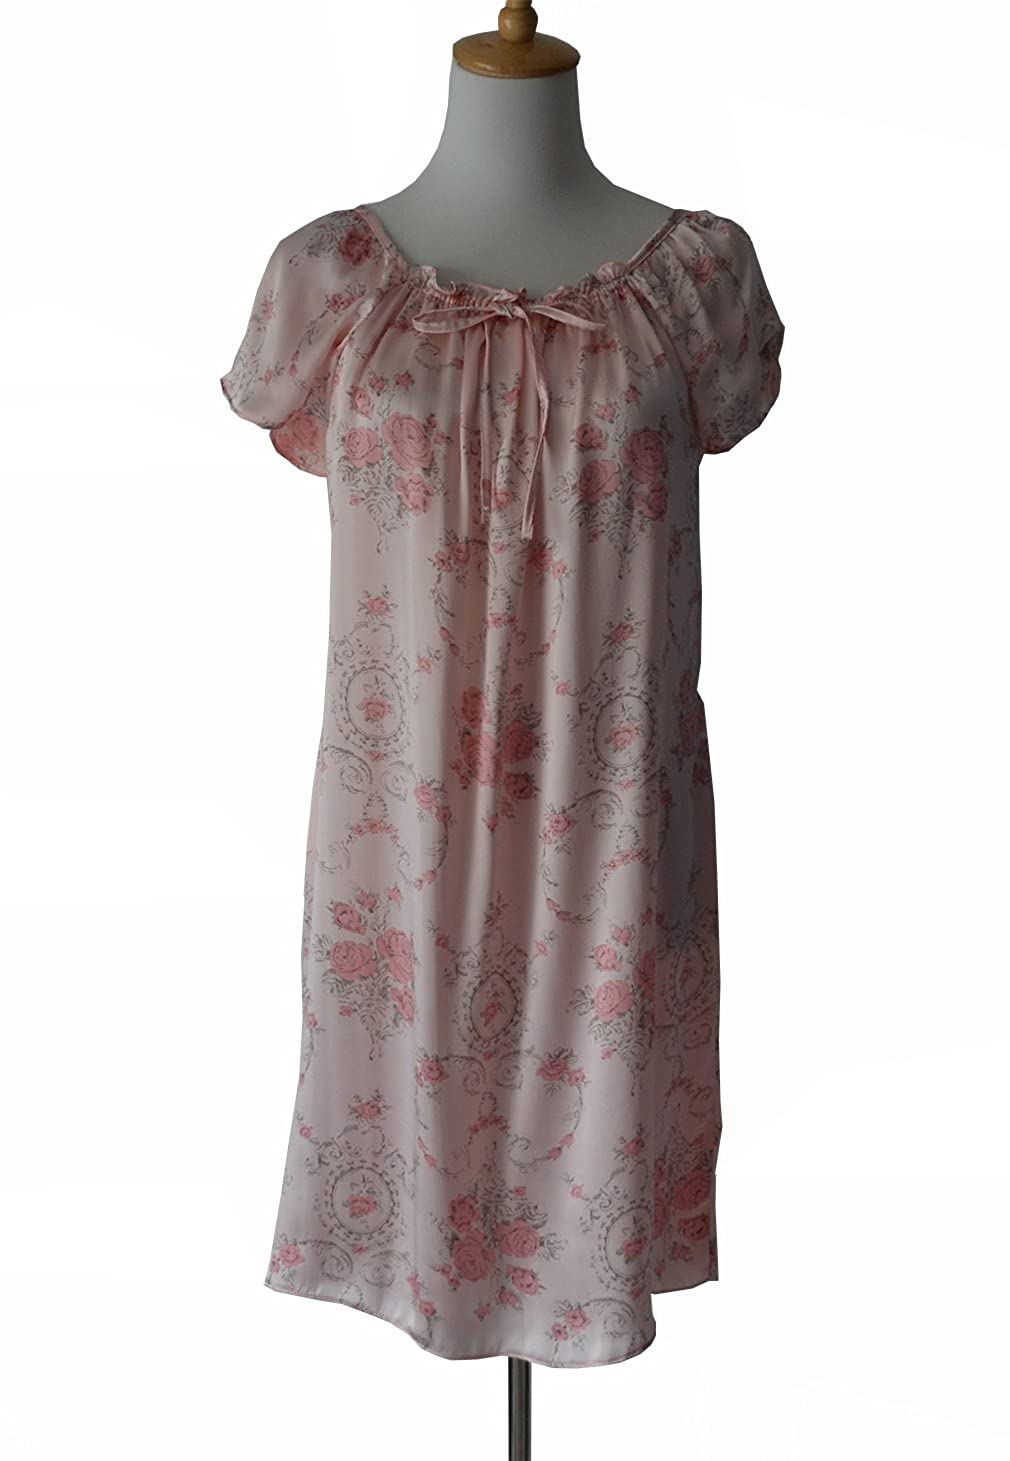 Maxfeel 100% Pure Mulberry Silk Nightgown Classic Nightwear Sleepwear